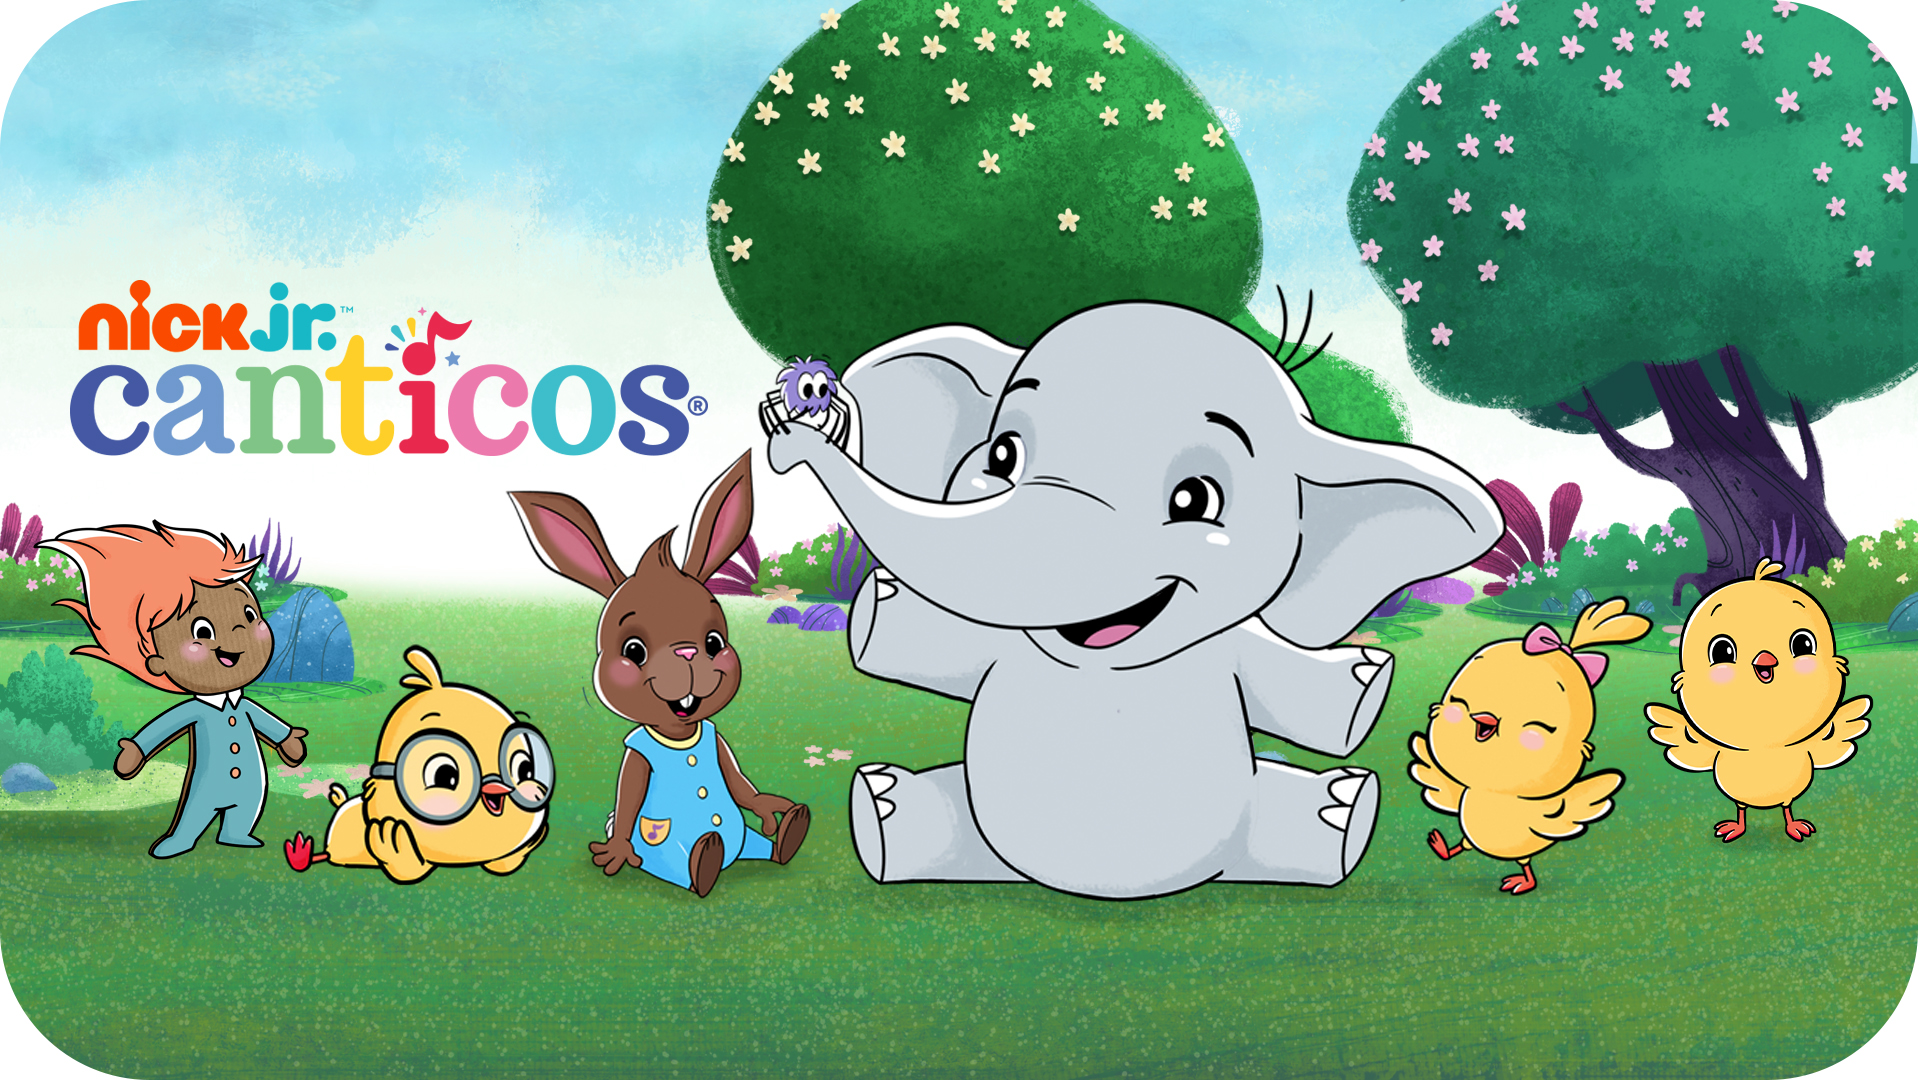 Canticos - Beloved by kids, parents, & educators, Canticos makes learning fun with bilingual (English & Spanish)books, digital apps, and sing-along videos featuring an adorable cast of animal characters.